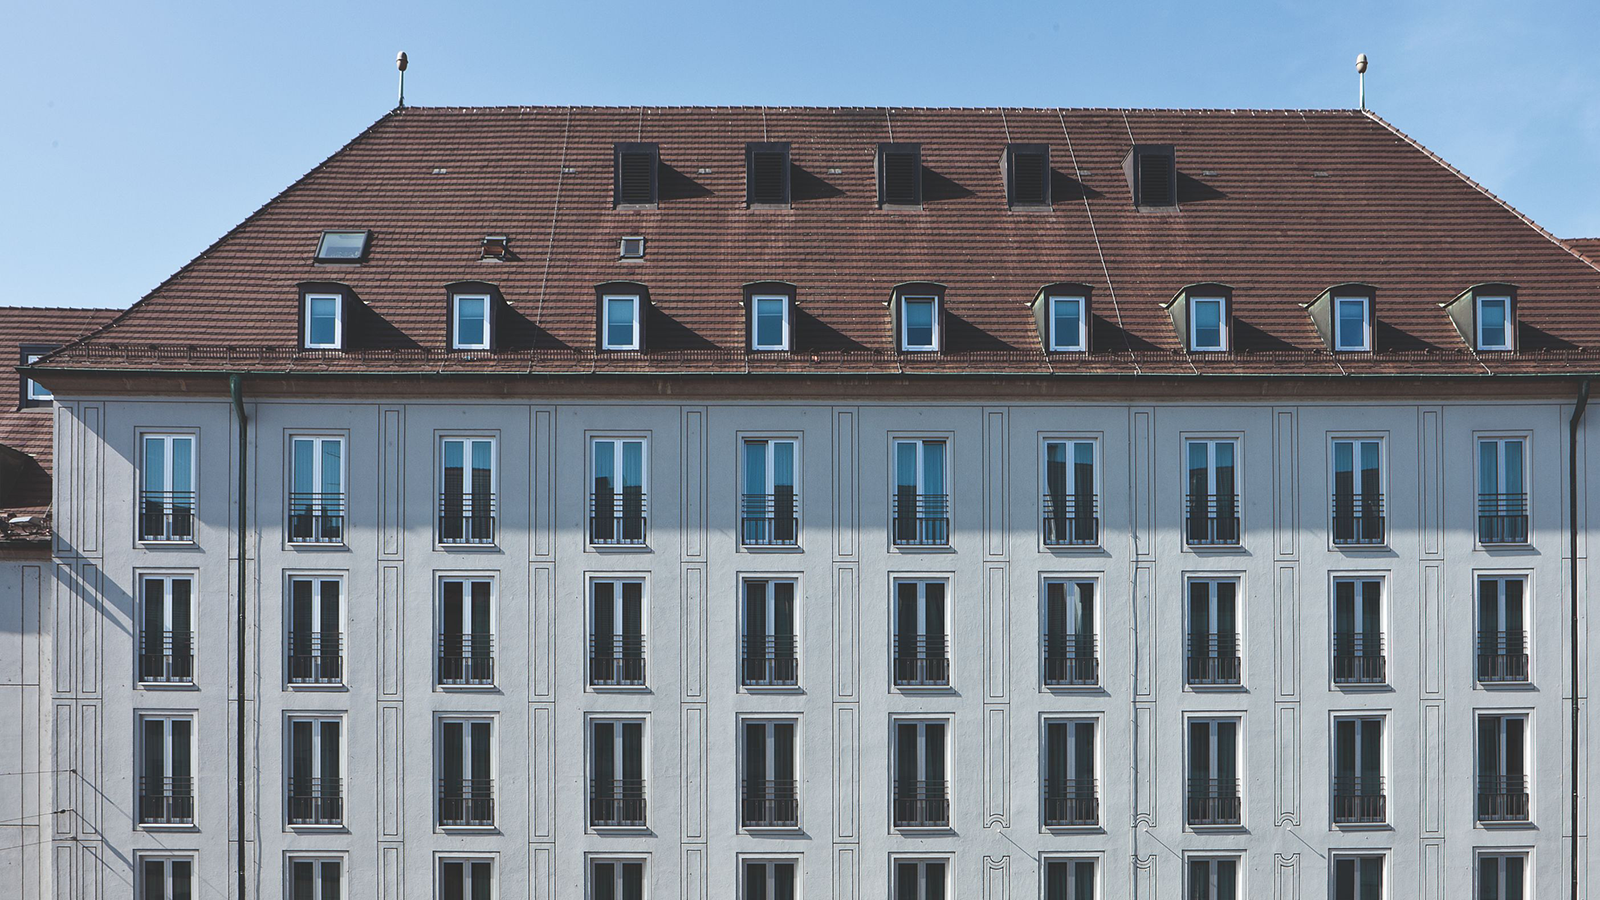 Discover the grand historical buildings that line the Maximilianstrasse nearby.